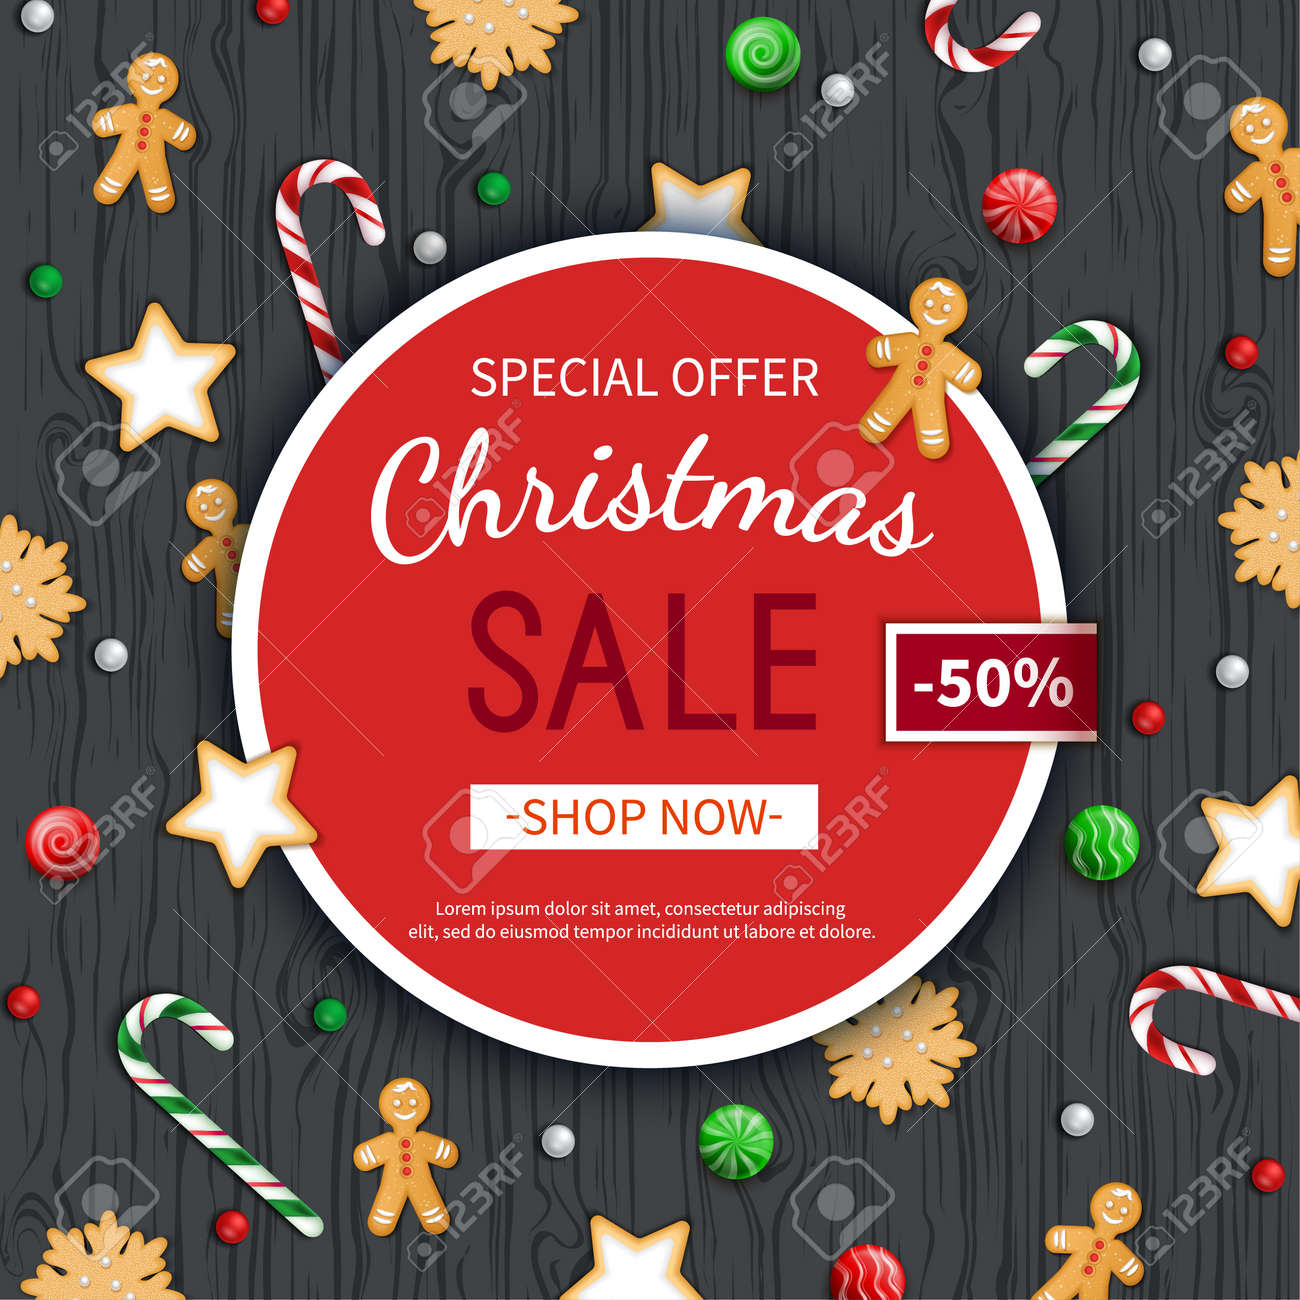 Christmas sale flyer template. Poster, card, label, background, banner on circle frame with sweets on a wooden black table. Special seasonal offer. Vector illustration. Top view - 156298018